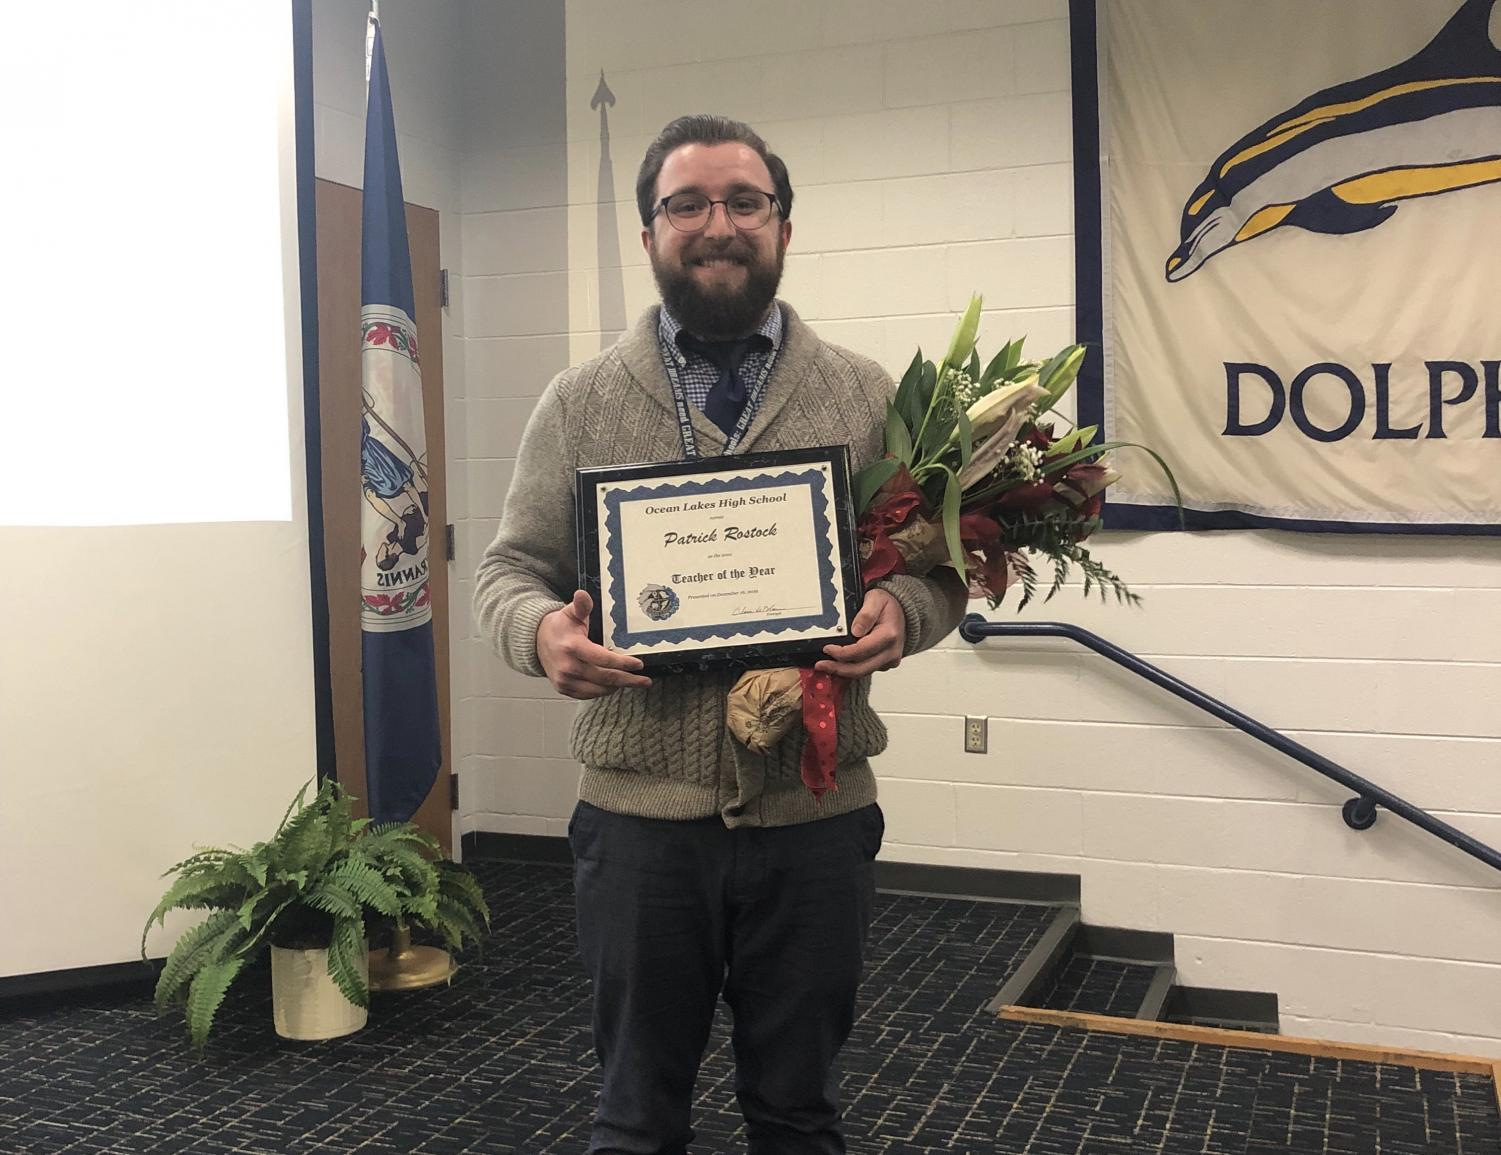 Patrick Rostock stands with his Teacher of the Year after the Distinguished Teacher Ceremony in the Schola on Dec. 16, 2019.